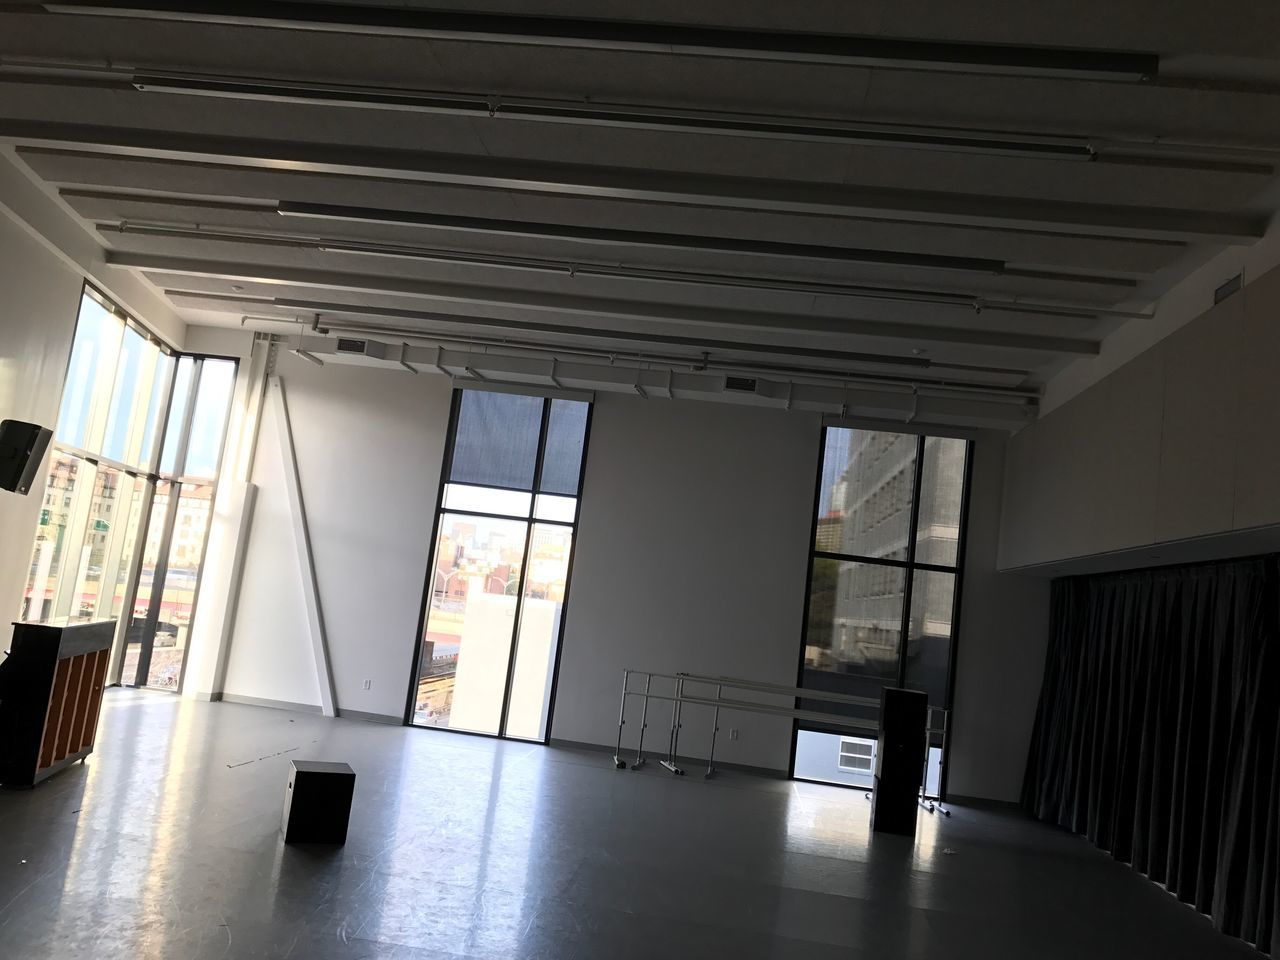 indoors, architecture, built structure, no people, day, bookshelf